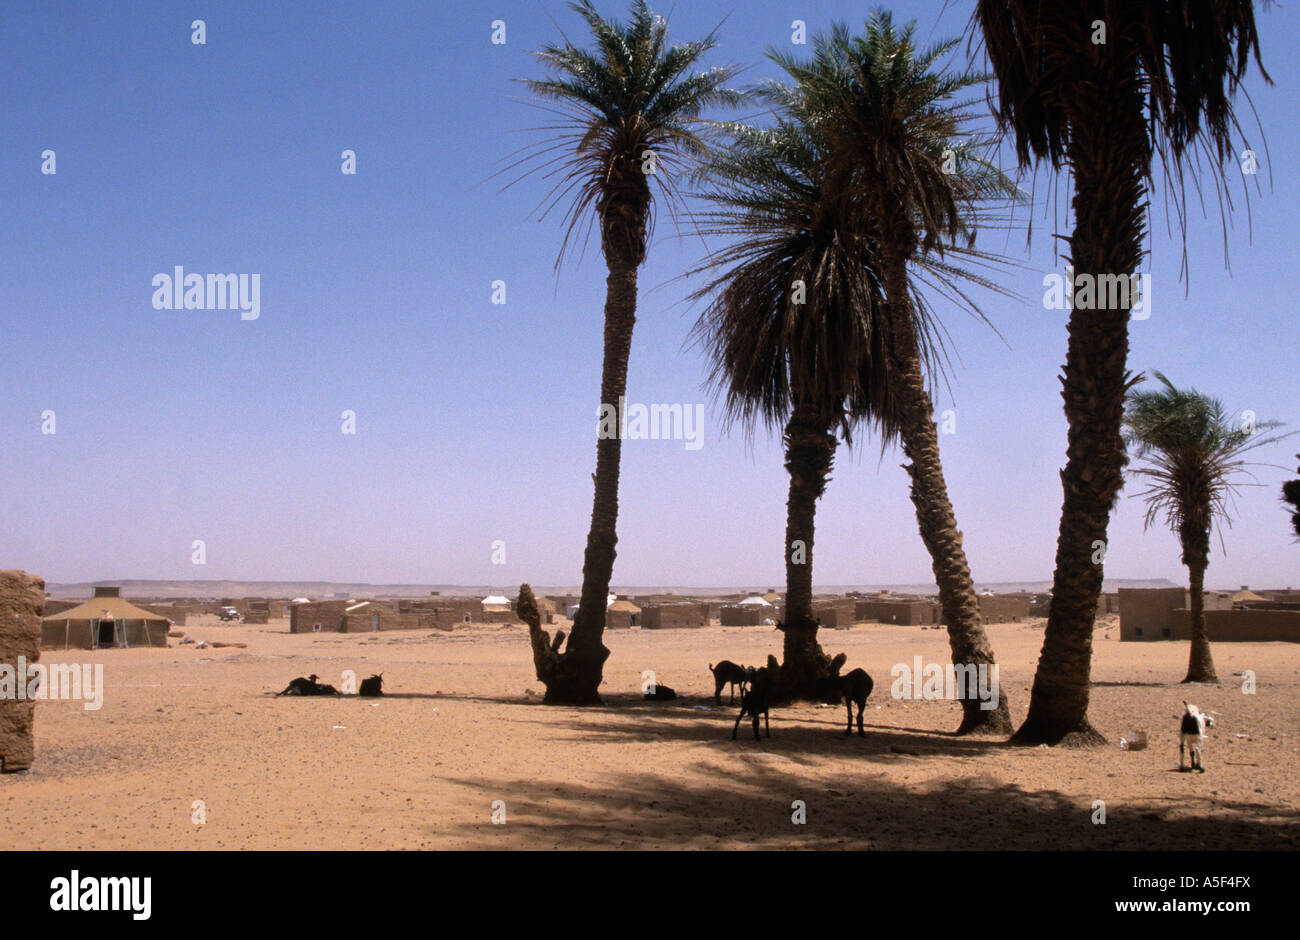 A scene of the Saharawi refugee camp in Tindouf Western Algeria - Stock Image